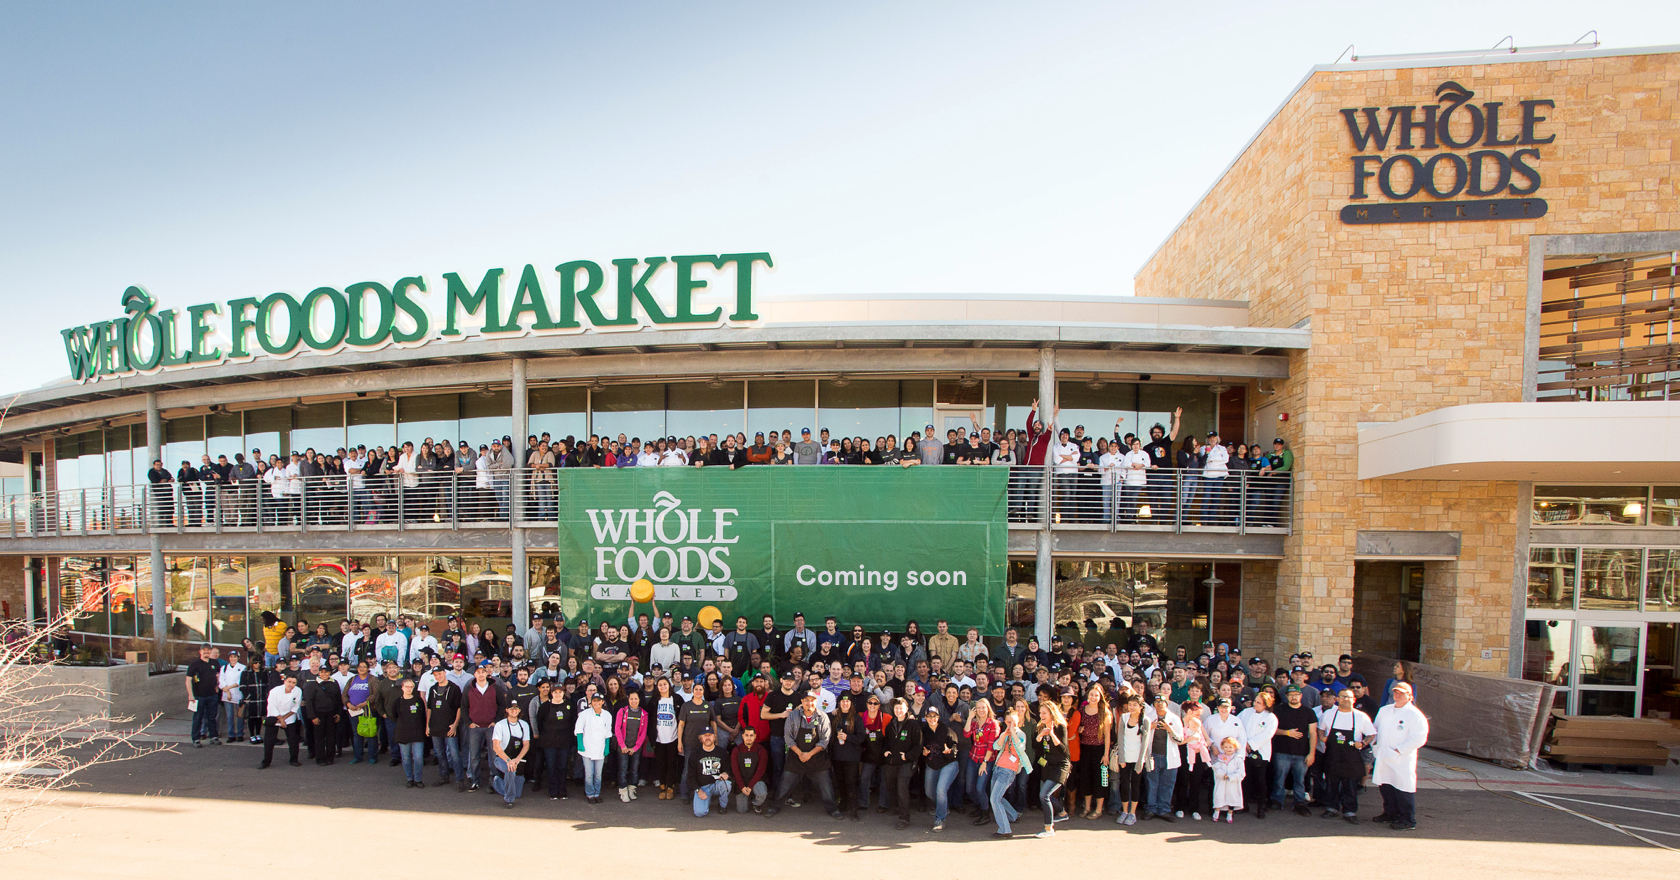 A new Whole Foods Market store opening